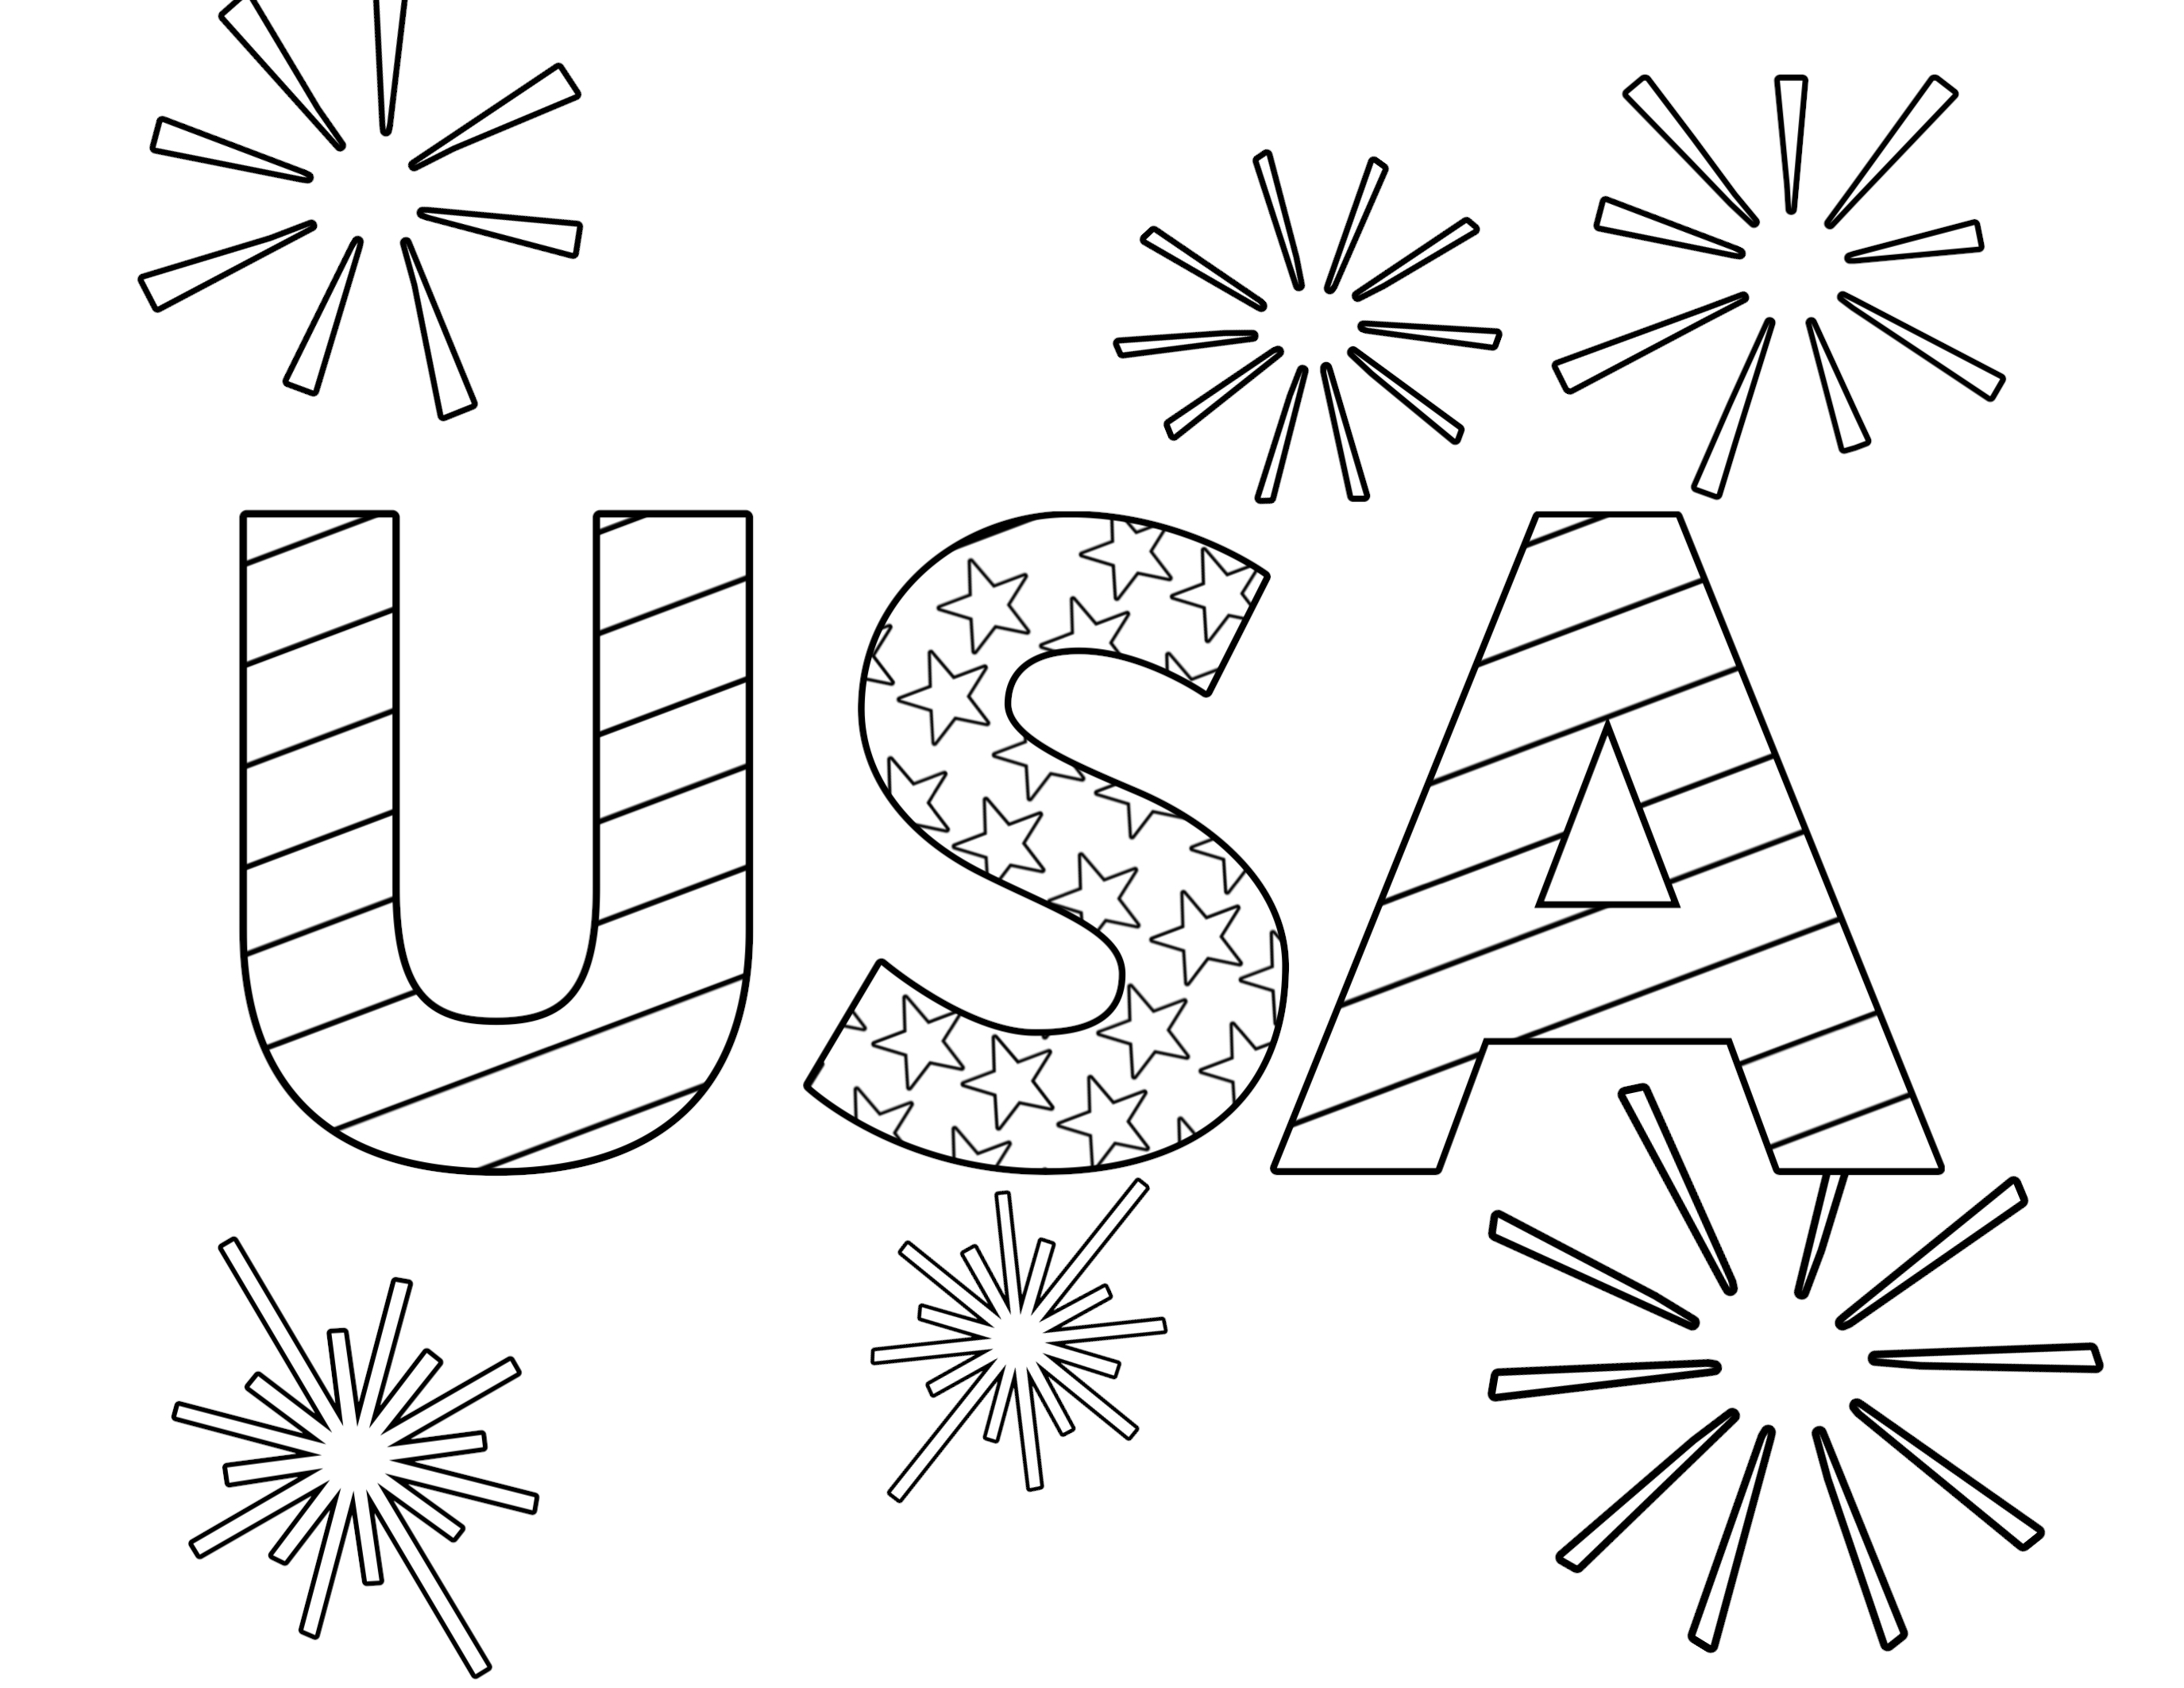 photograph regarding Free Printable 4th of July Coloring Pages named Totally free Printable 4th of July Coloring Internet pages - Paper Path Layout